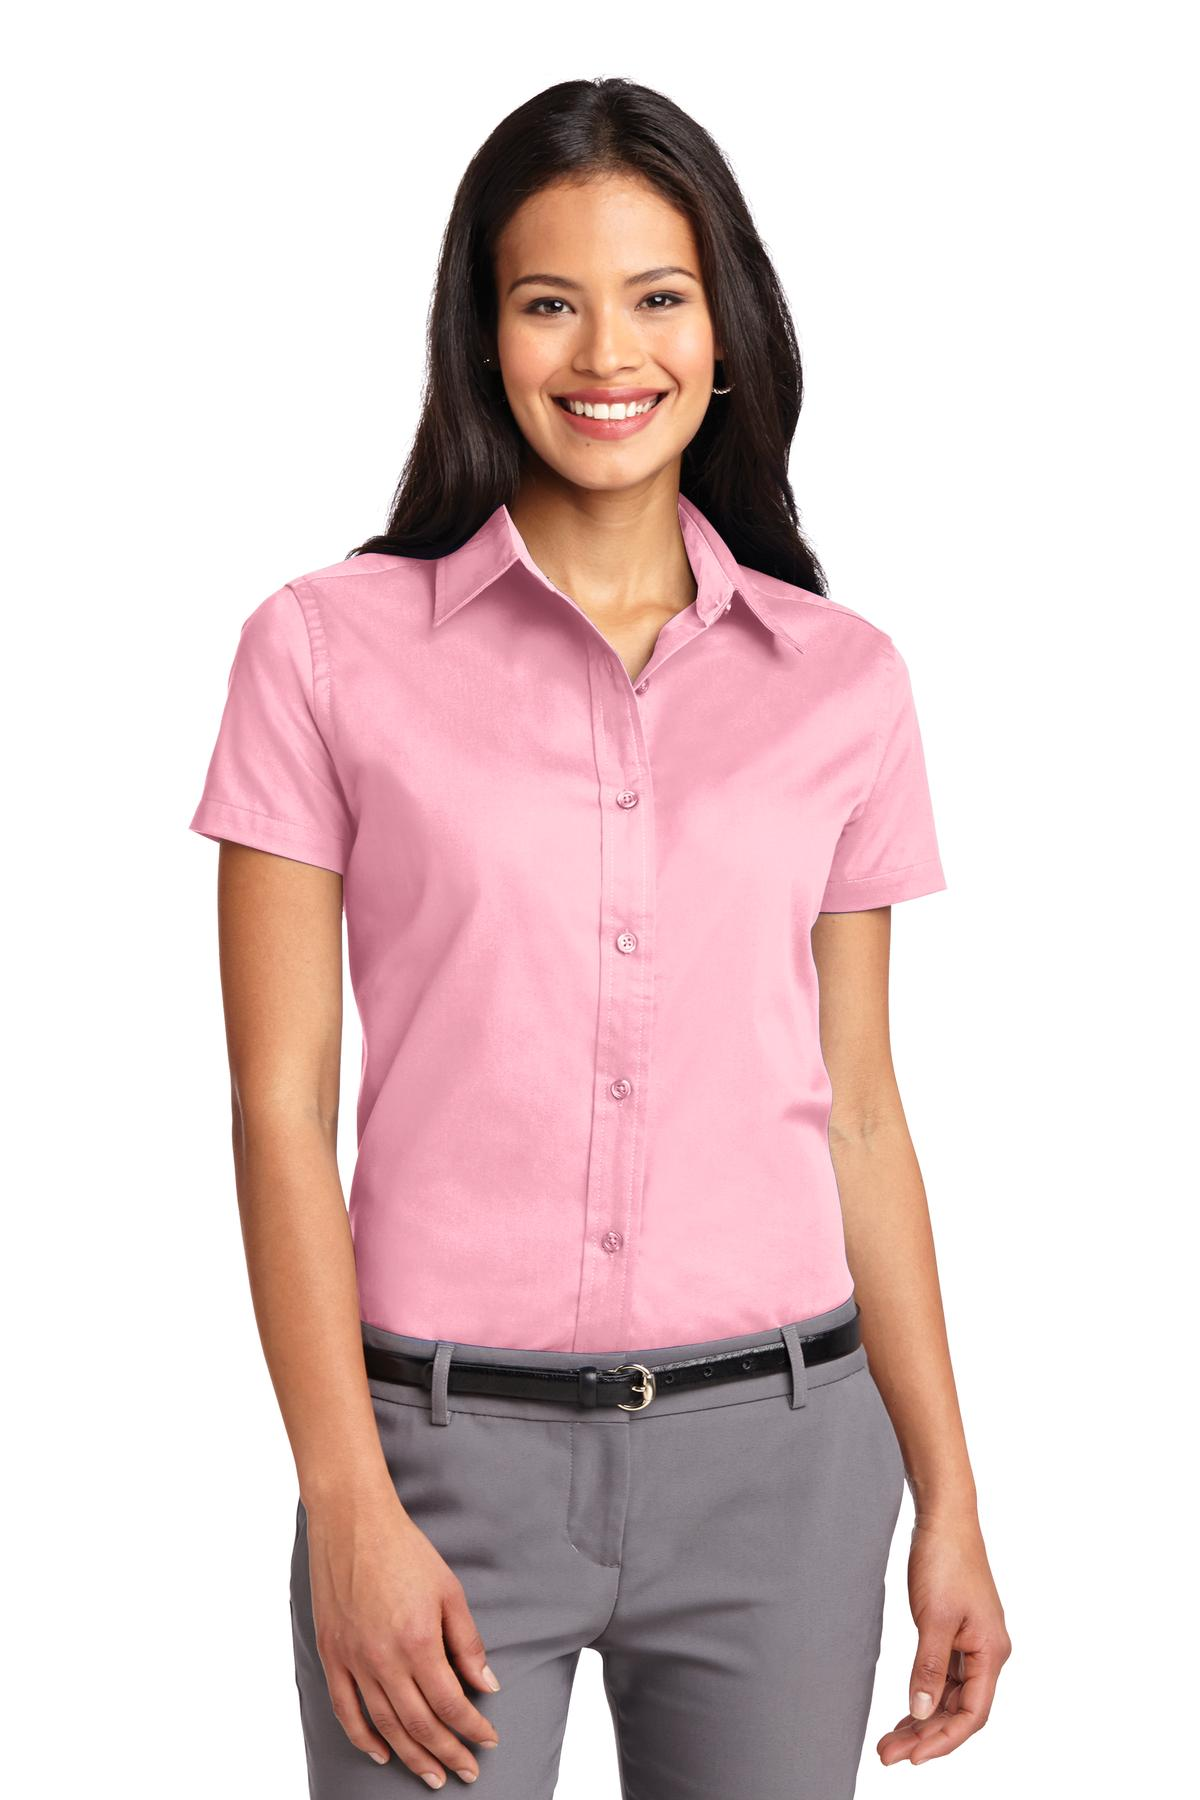 Port Authority ®  Ladies Short Sleeve Easy Care  Shirt.  L508 - Light Pink